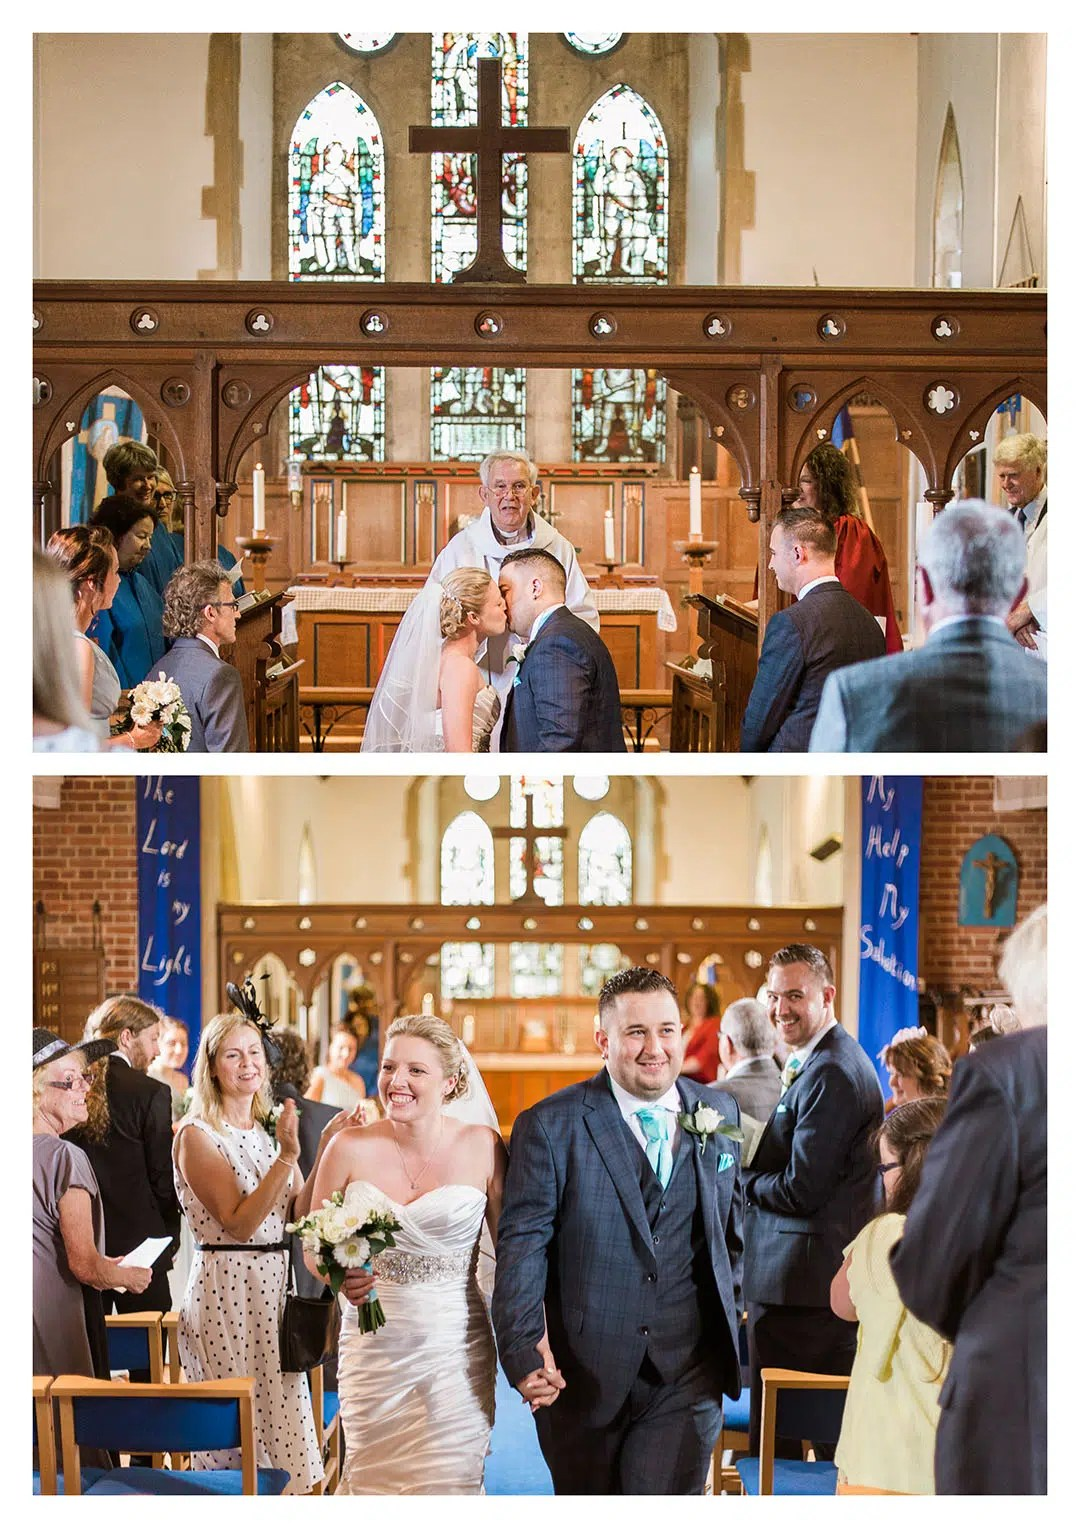 St Michaels Church Ceremony in Partridge Green Wedding Photography